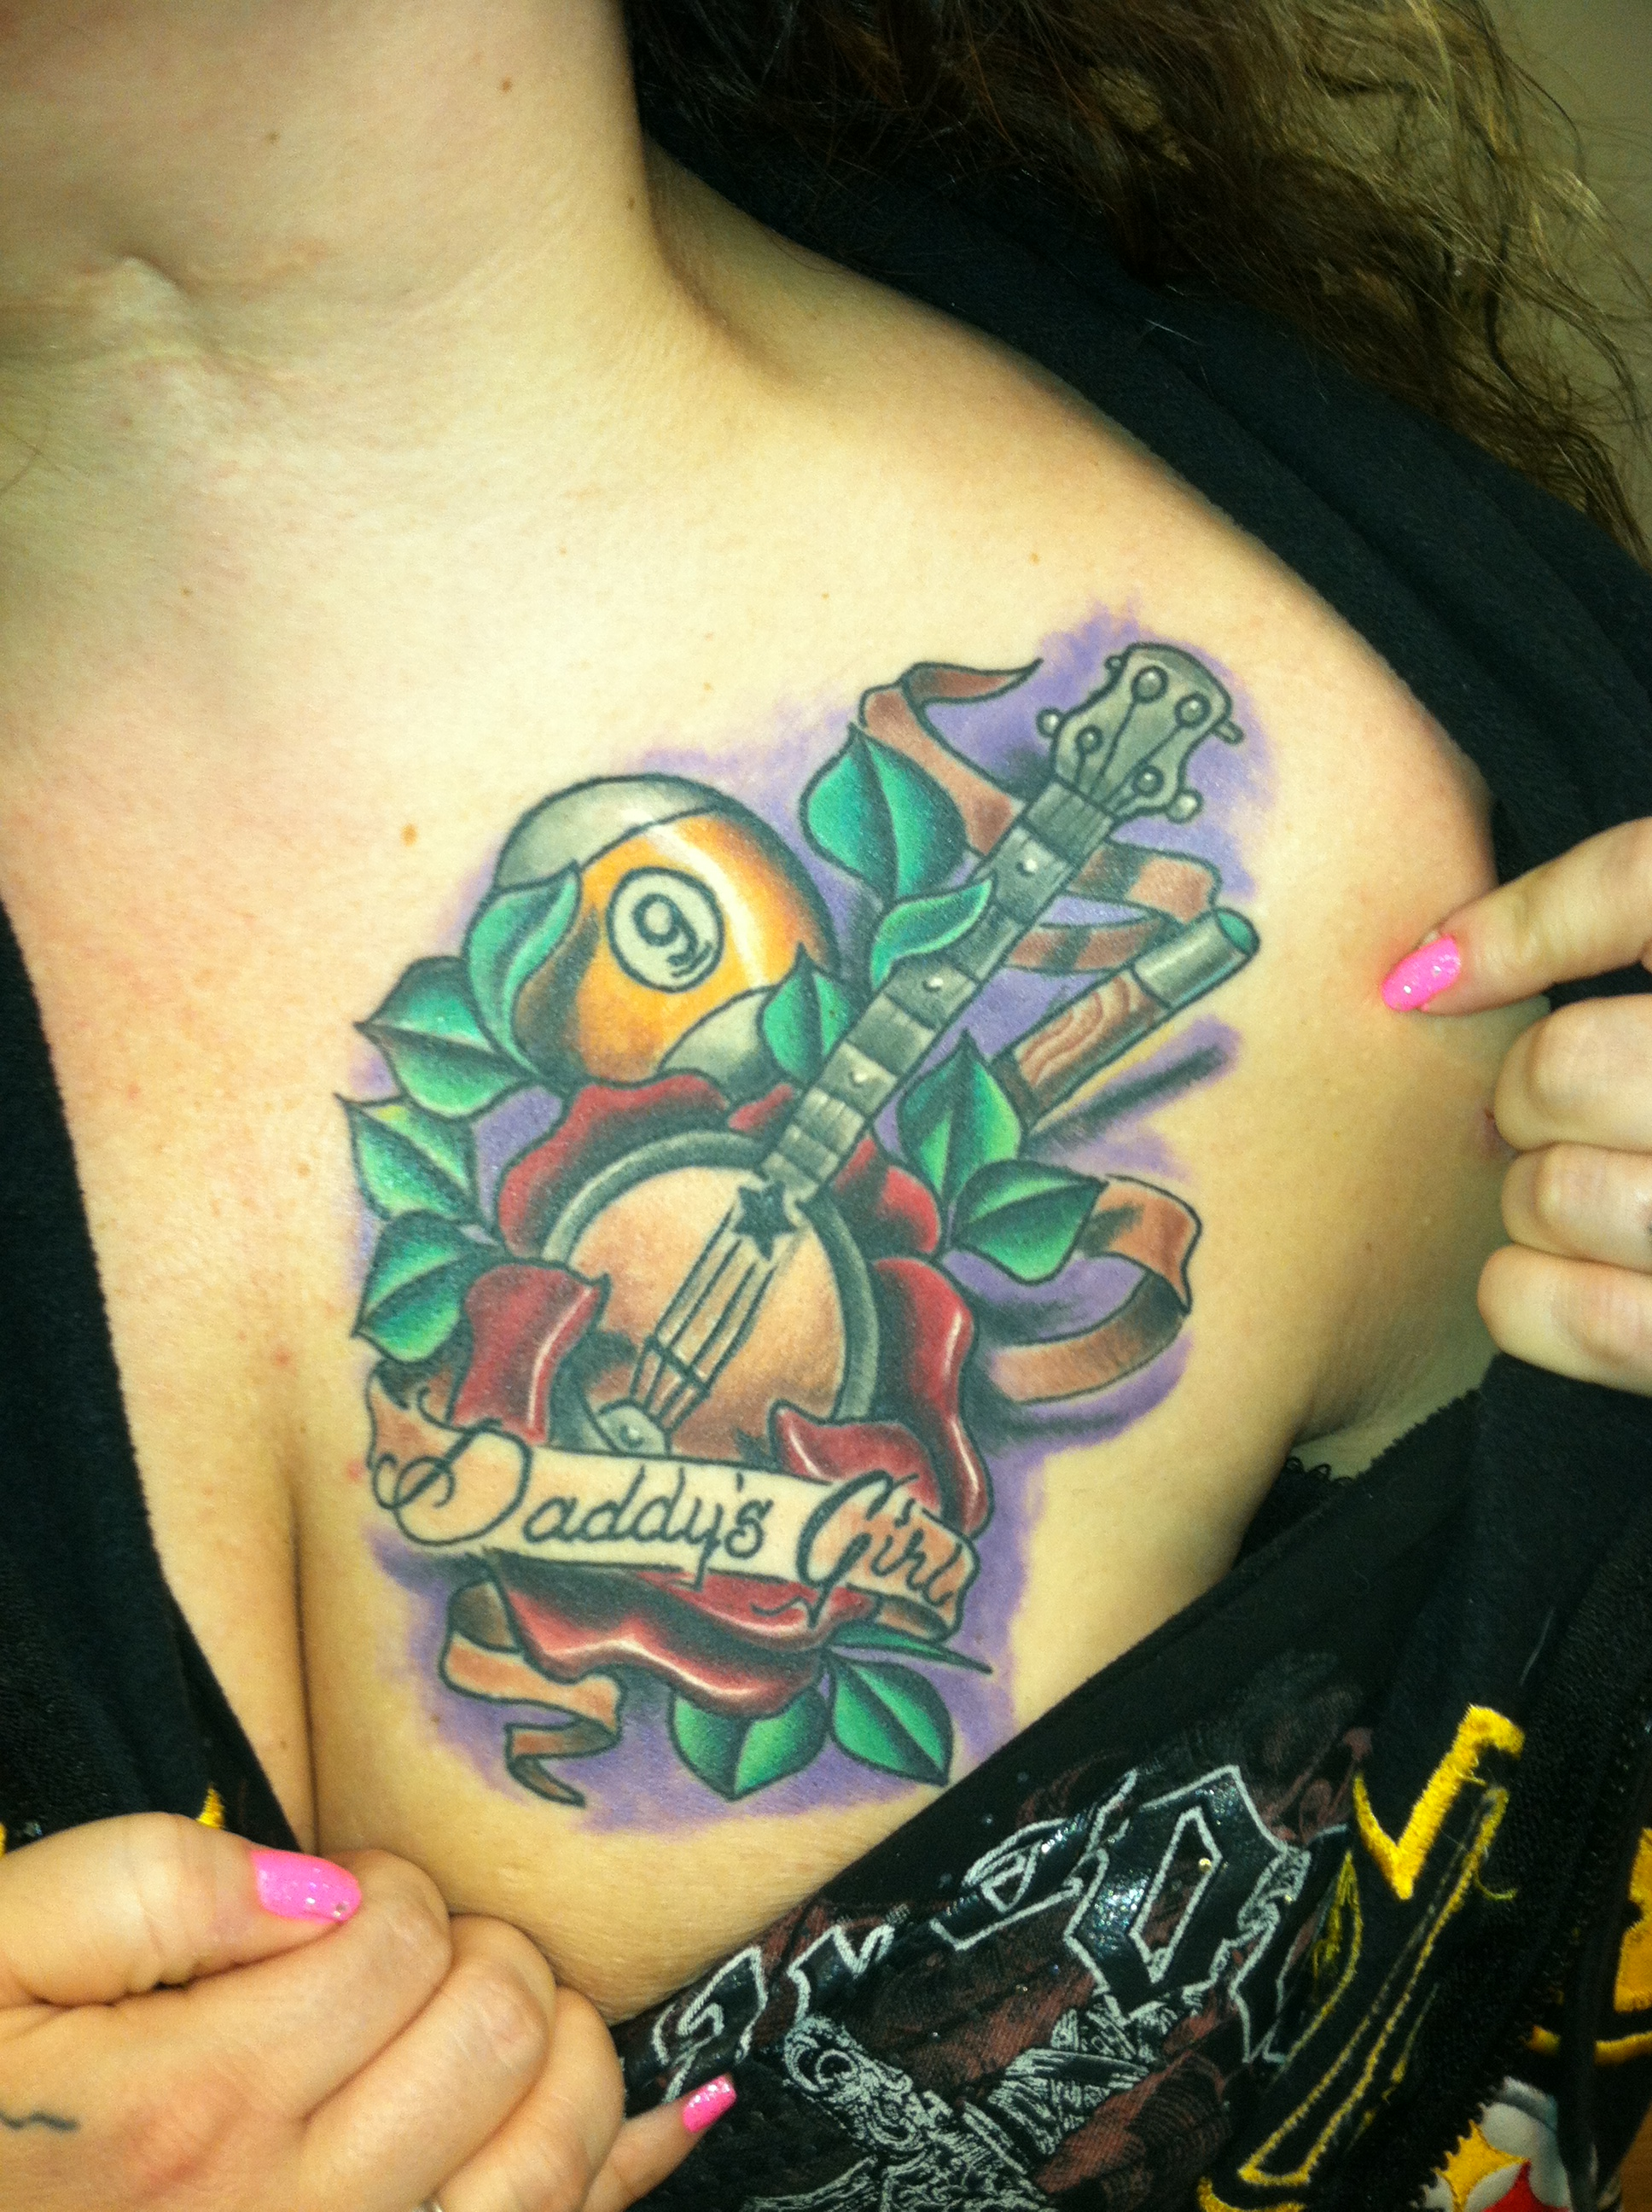 healed_custom_banjo_rose_billiard_ball_cue_stick_daddys_girl_chest_tattoo_david_meek_tattoos_true_til_death_tattoo_company_ashtabula_ohio